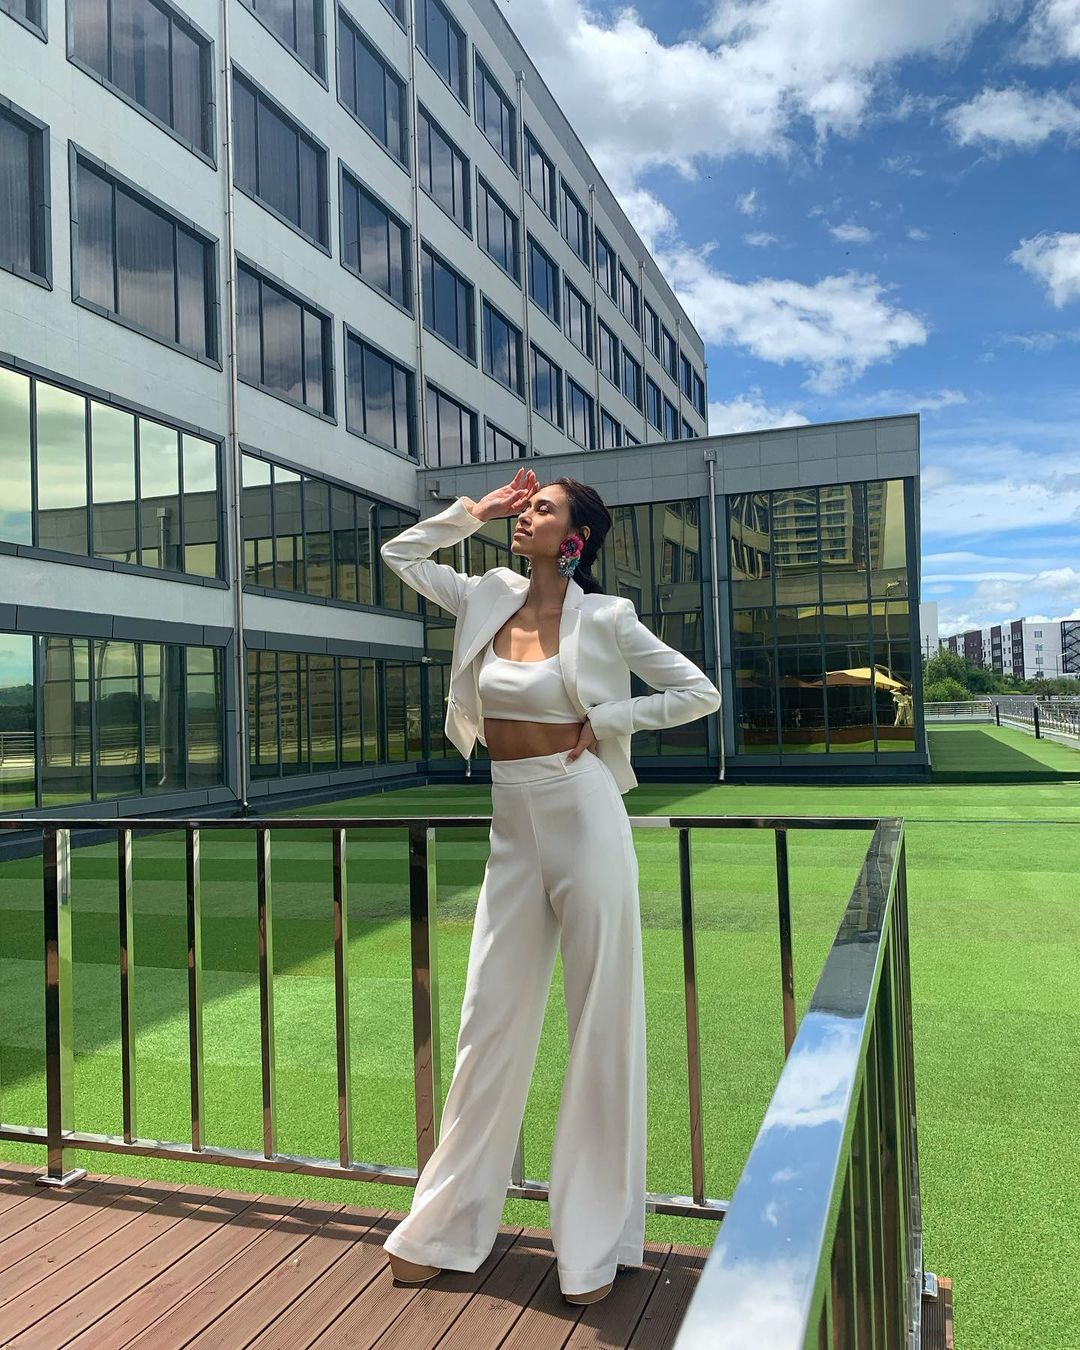 ootd poses as seen on miss universe philippines 2021 candidates